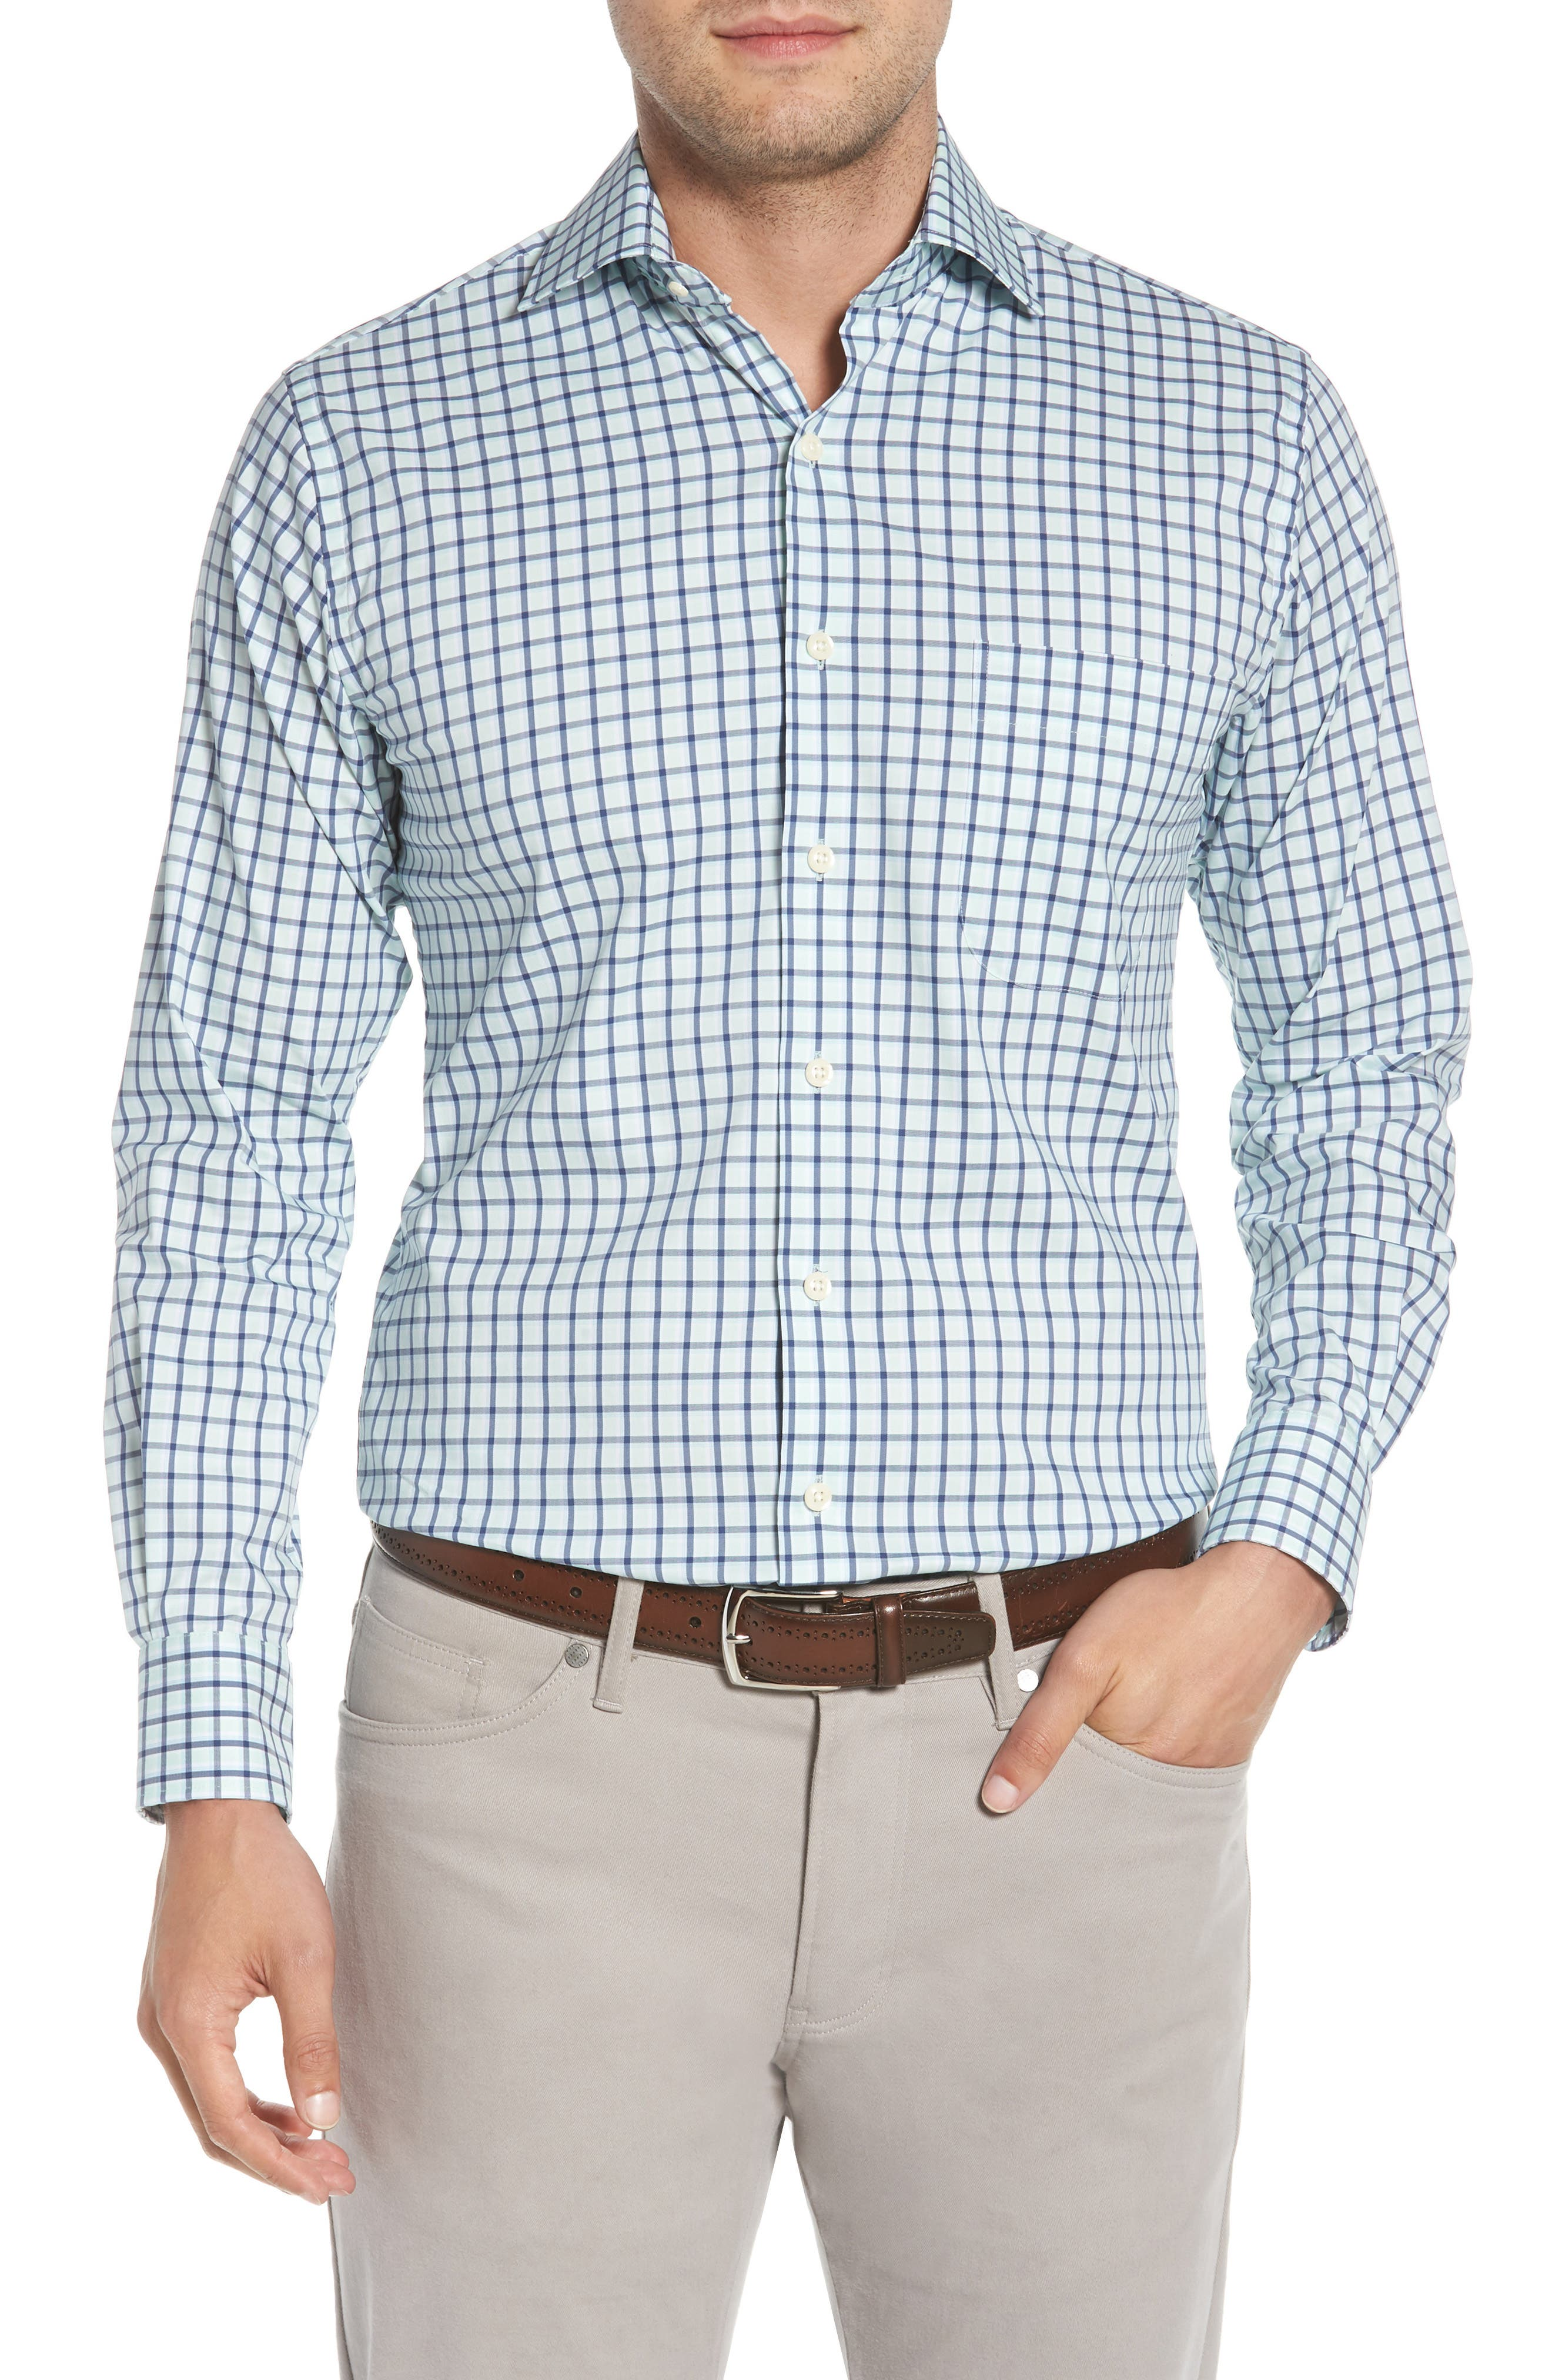 Crown Comfort Check Sport Shirt,                         Main,                         color, Cays